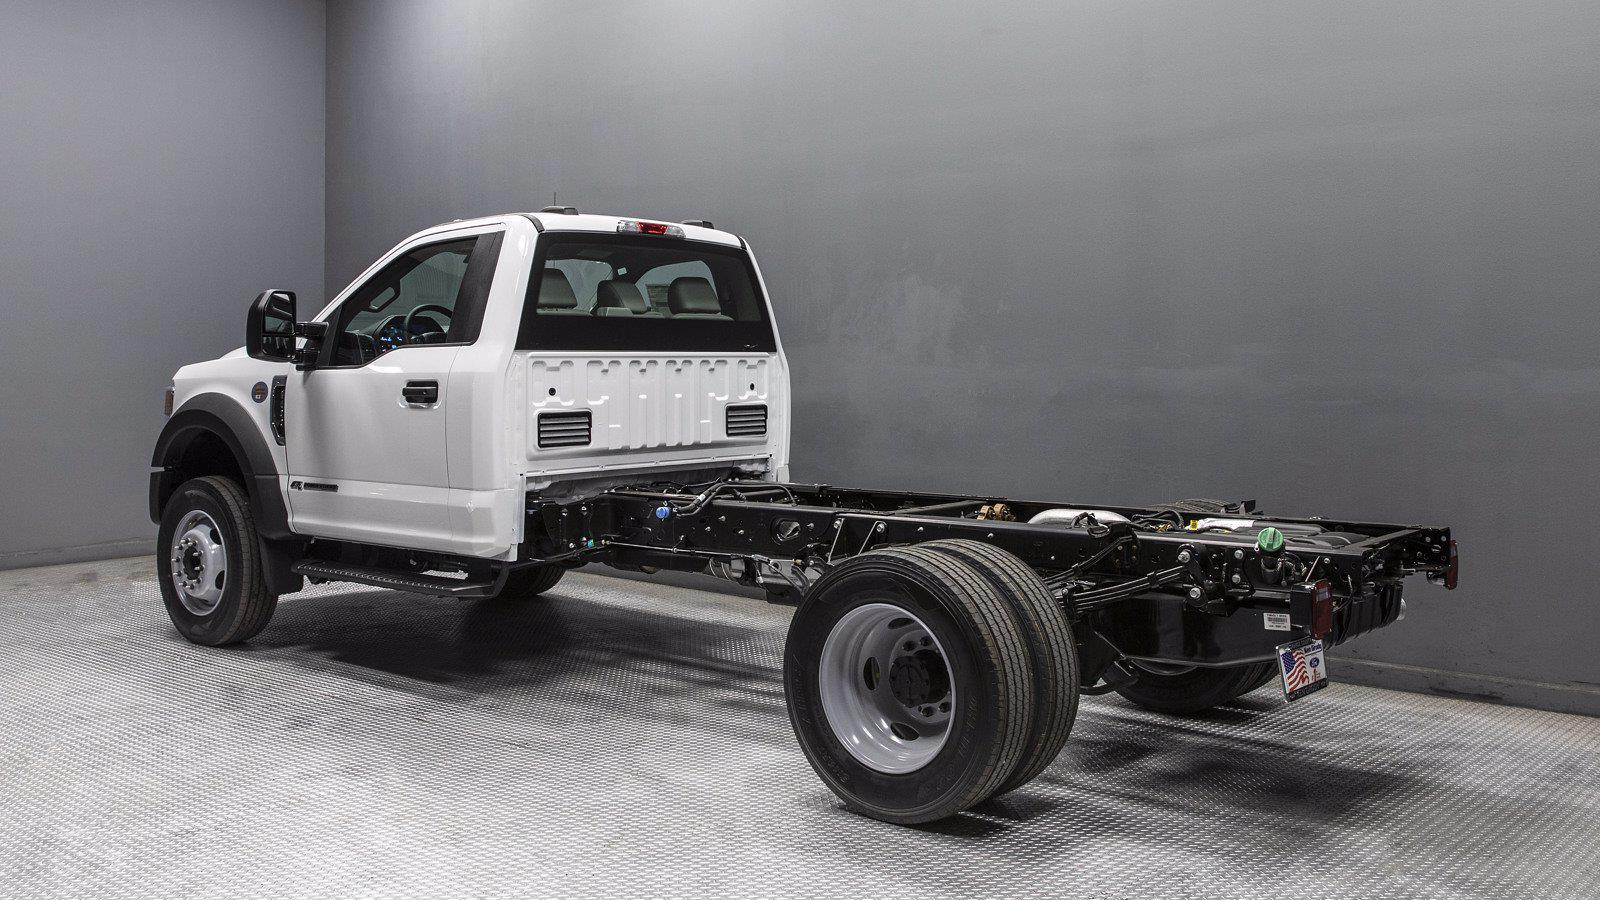 2021 Ford F-600 Regular Cab DRW 4x2, Cab Chassis #210604 - photo 1